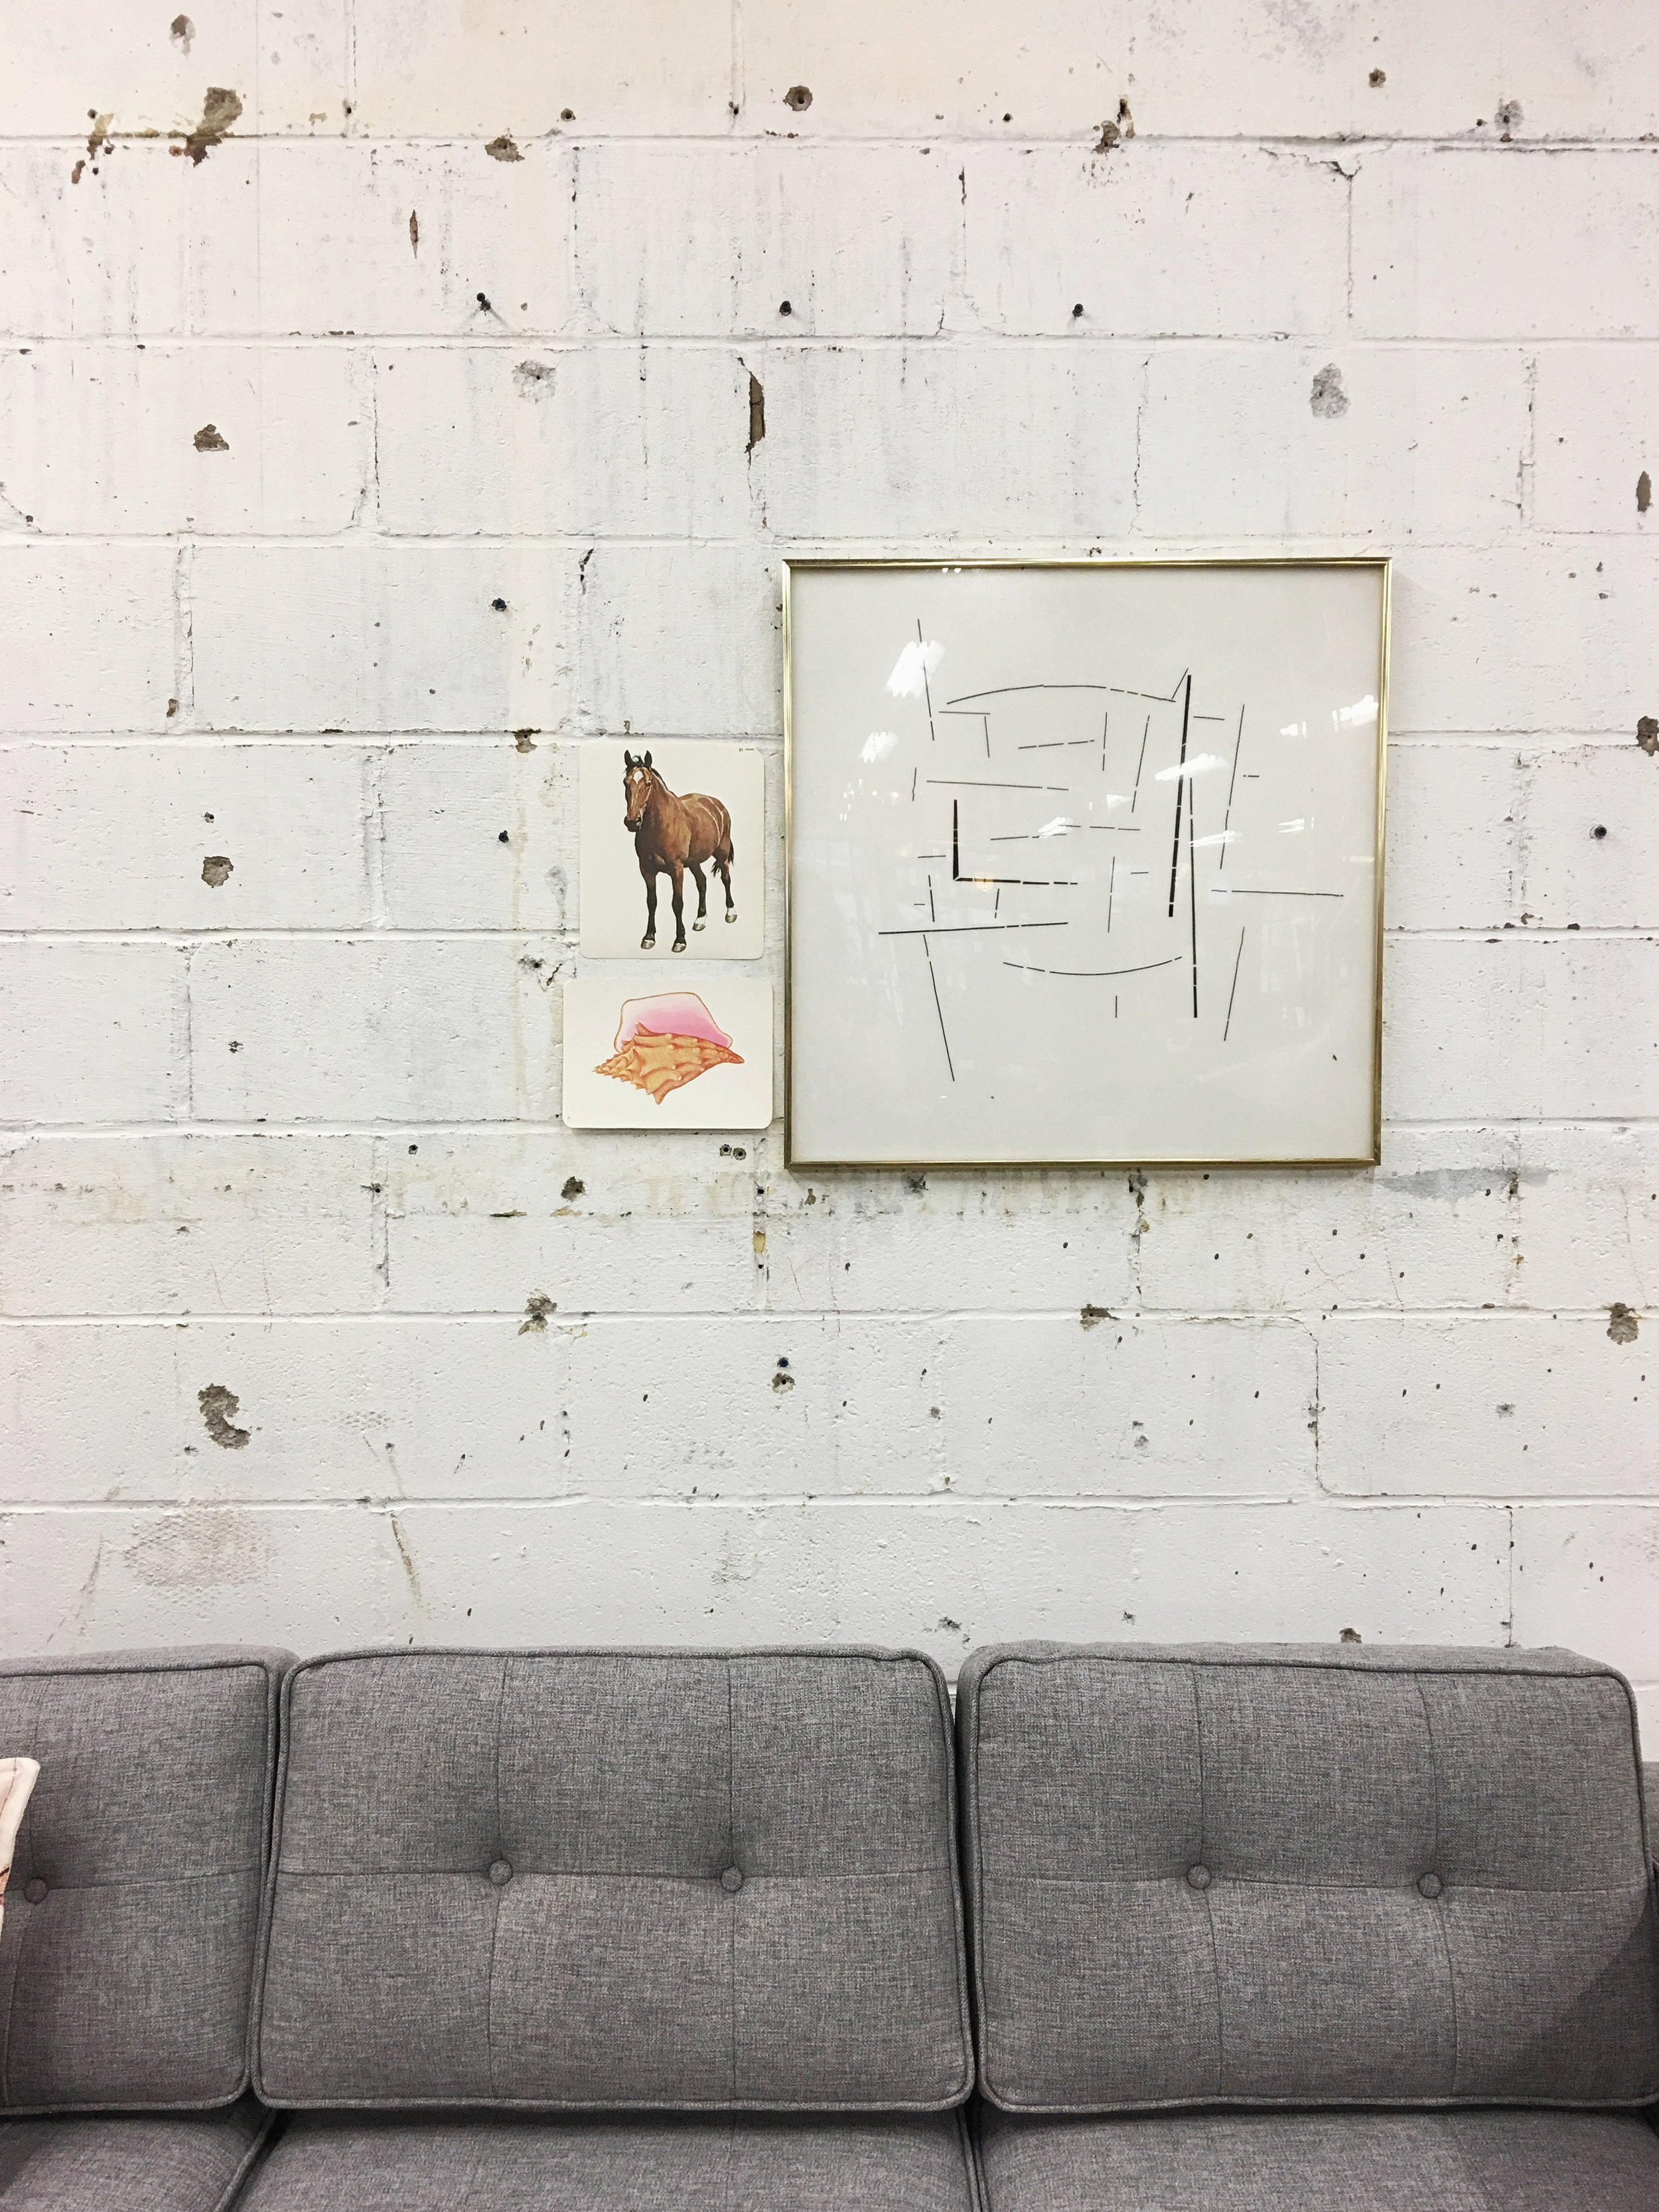 Minimalist: A simple gallery wall with framed abstract art along with vintage flash cards. Would a true minimalist have only one piece?